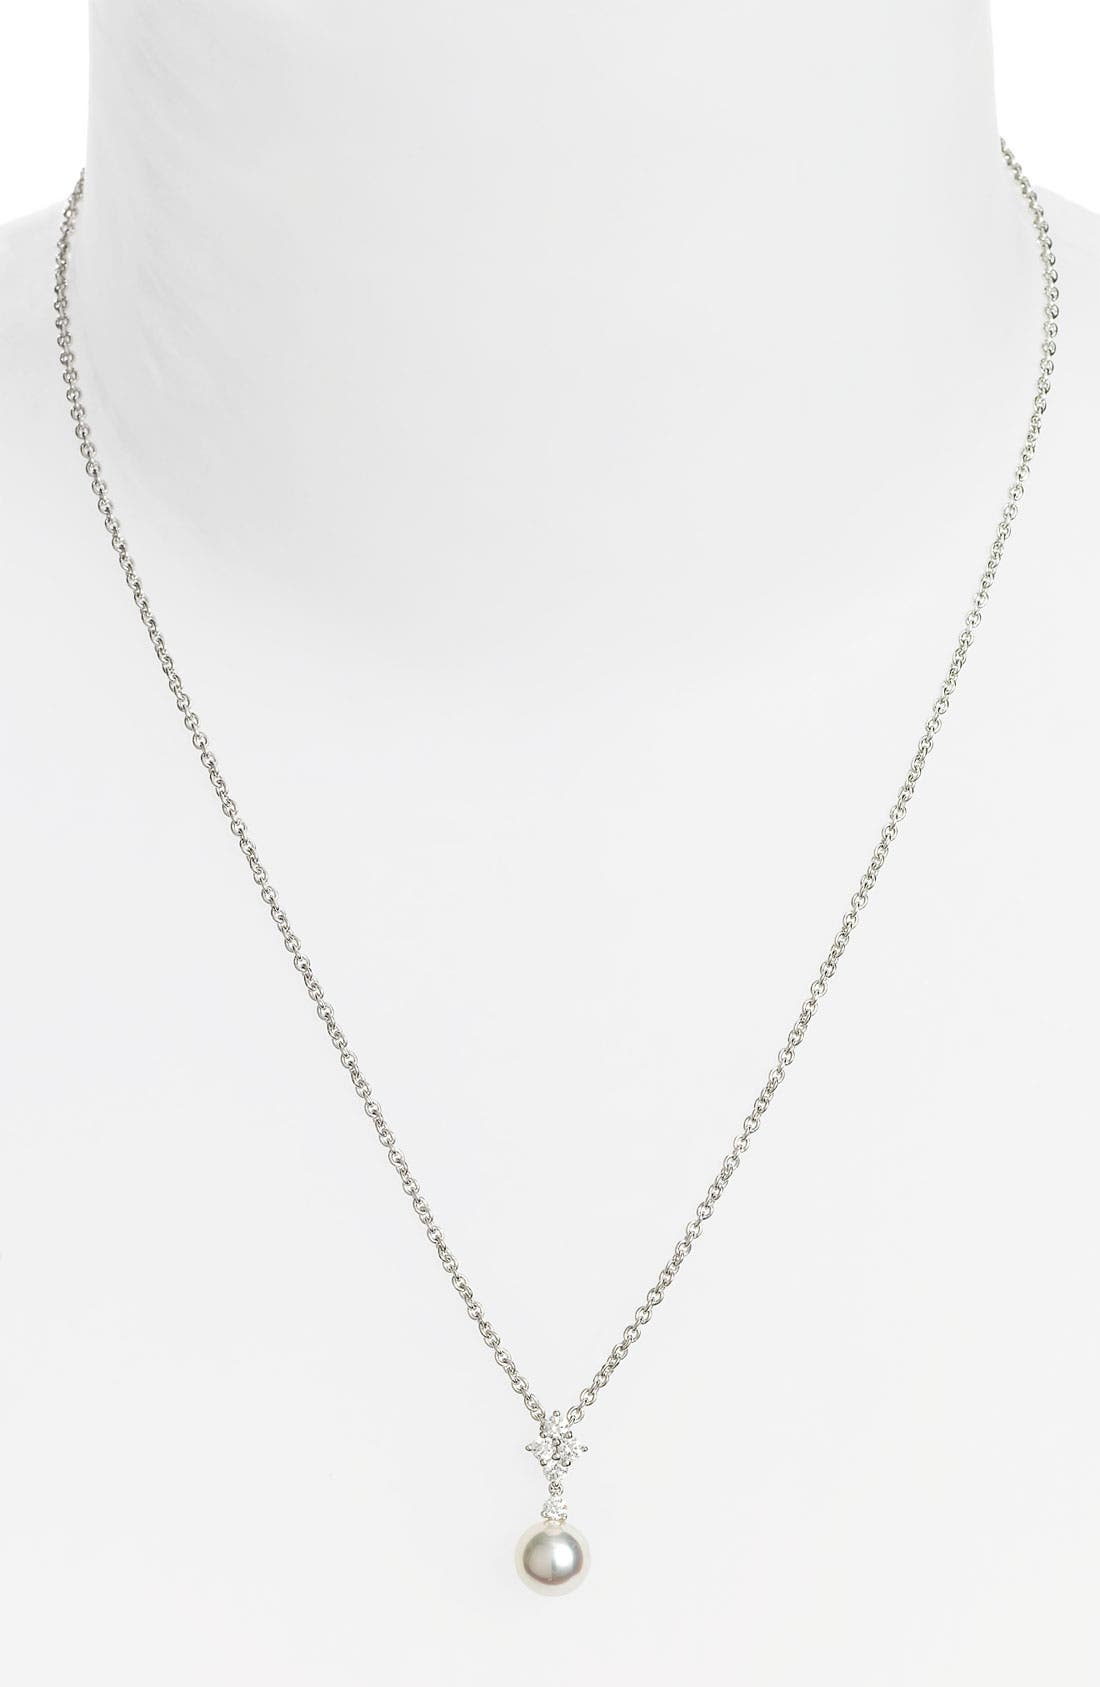 Alternate Image 1 Selected - Mikimoto 'Classic Elegance' Akoya Cultured Pearl & Diamond Necklace